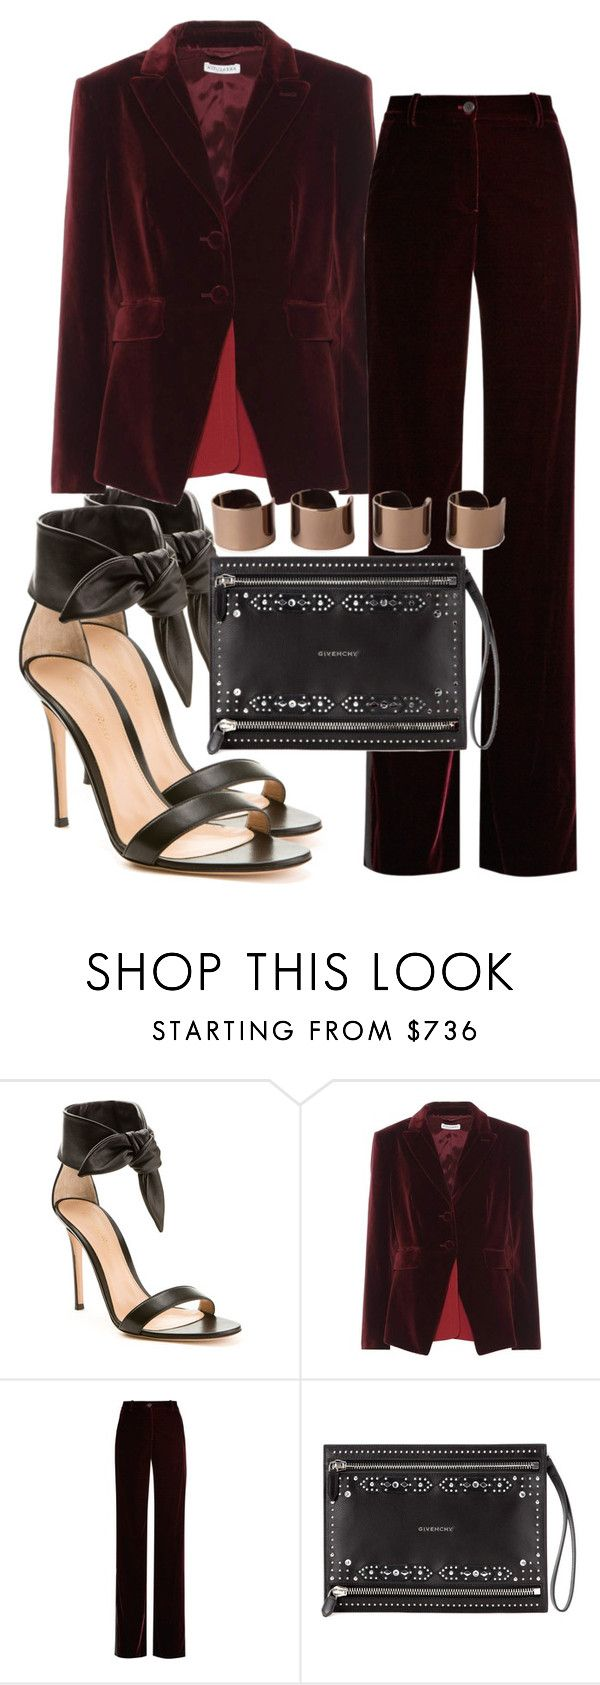 """""""Untitled #1853"""" by mariandradde ❤ liked on Polyvore featuring Gianvito Rossi, Altuzarra, Roberto Cavalli, Givenchy and Maison Margiela"""